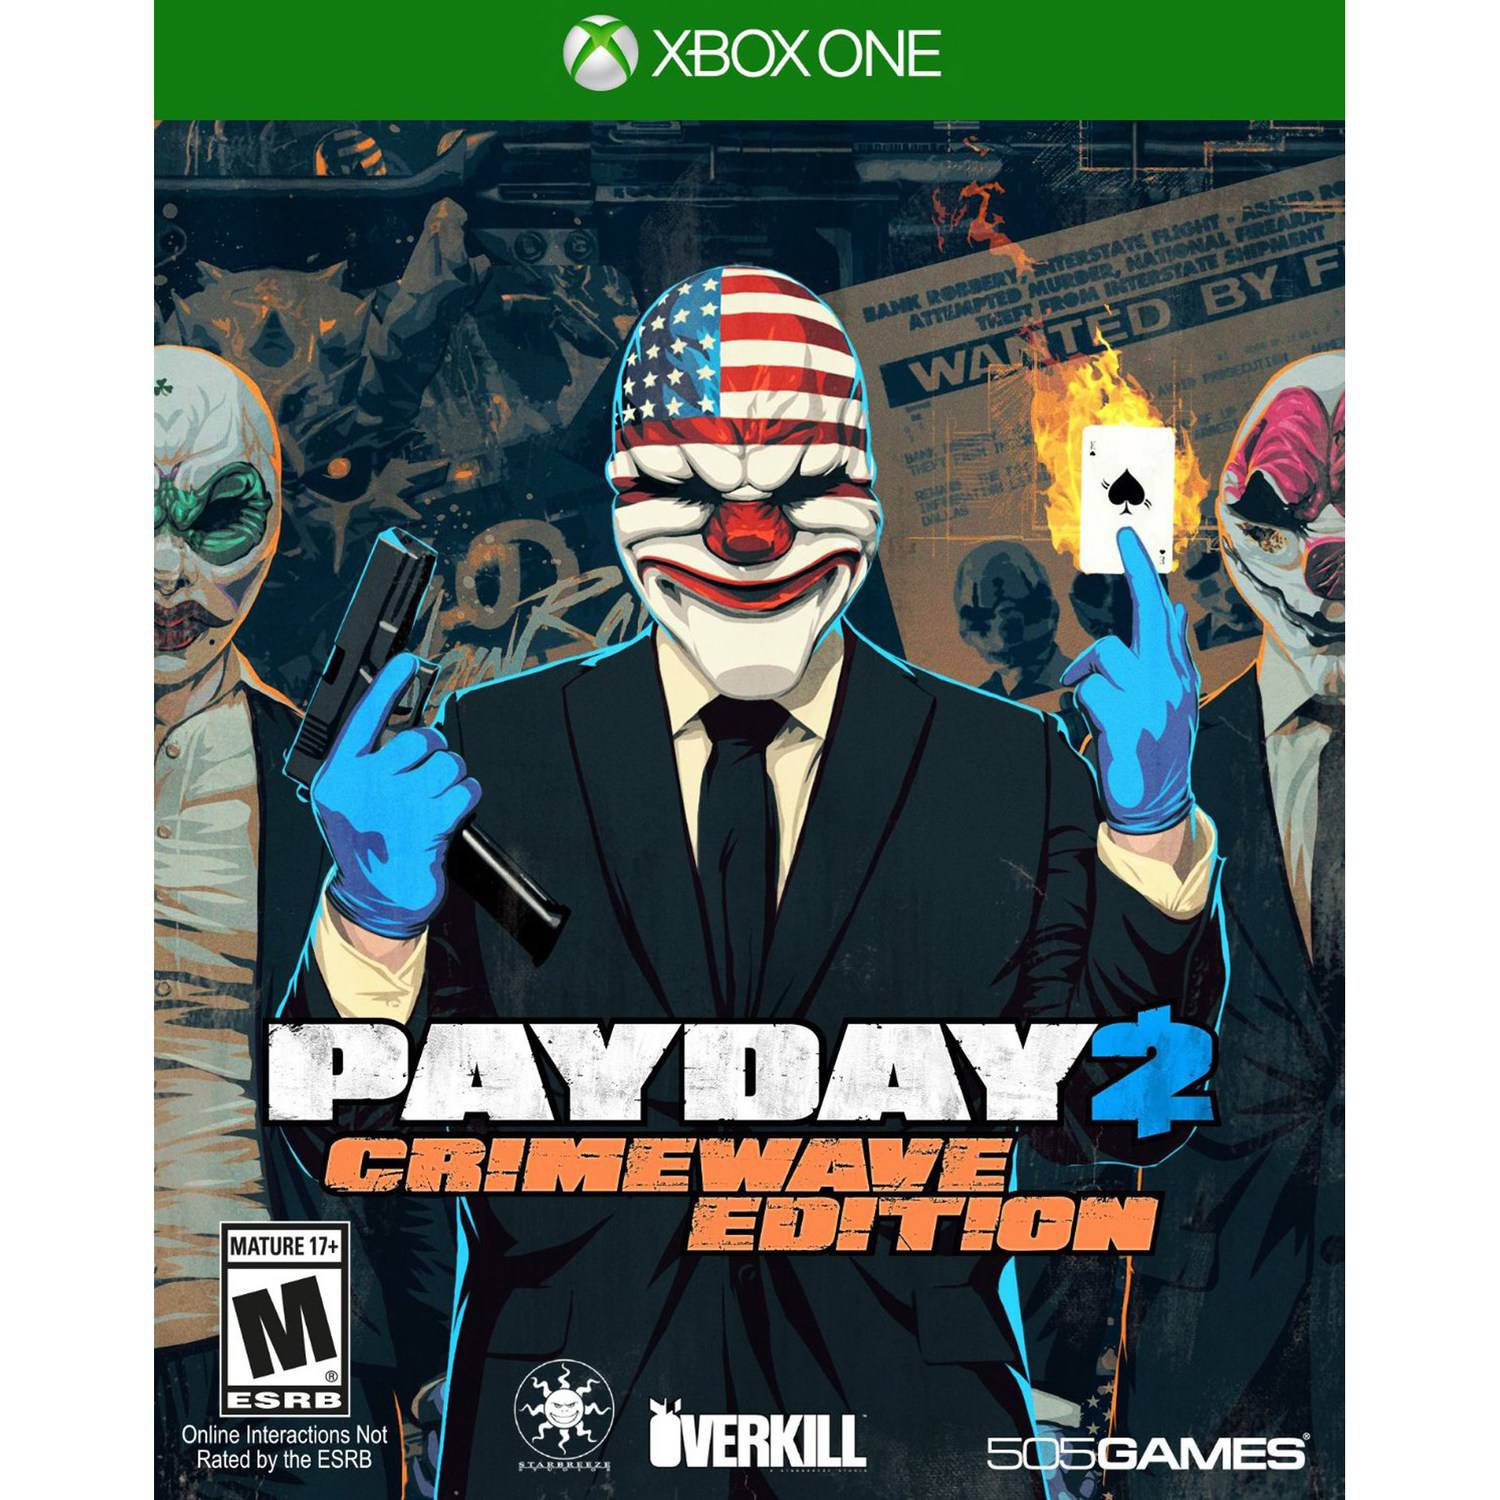 Payday 2: Crimewave Edition (Xbox One) - Pre-Owned